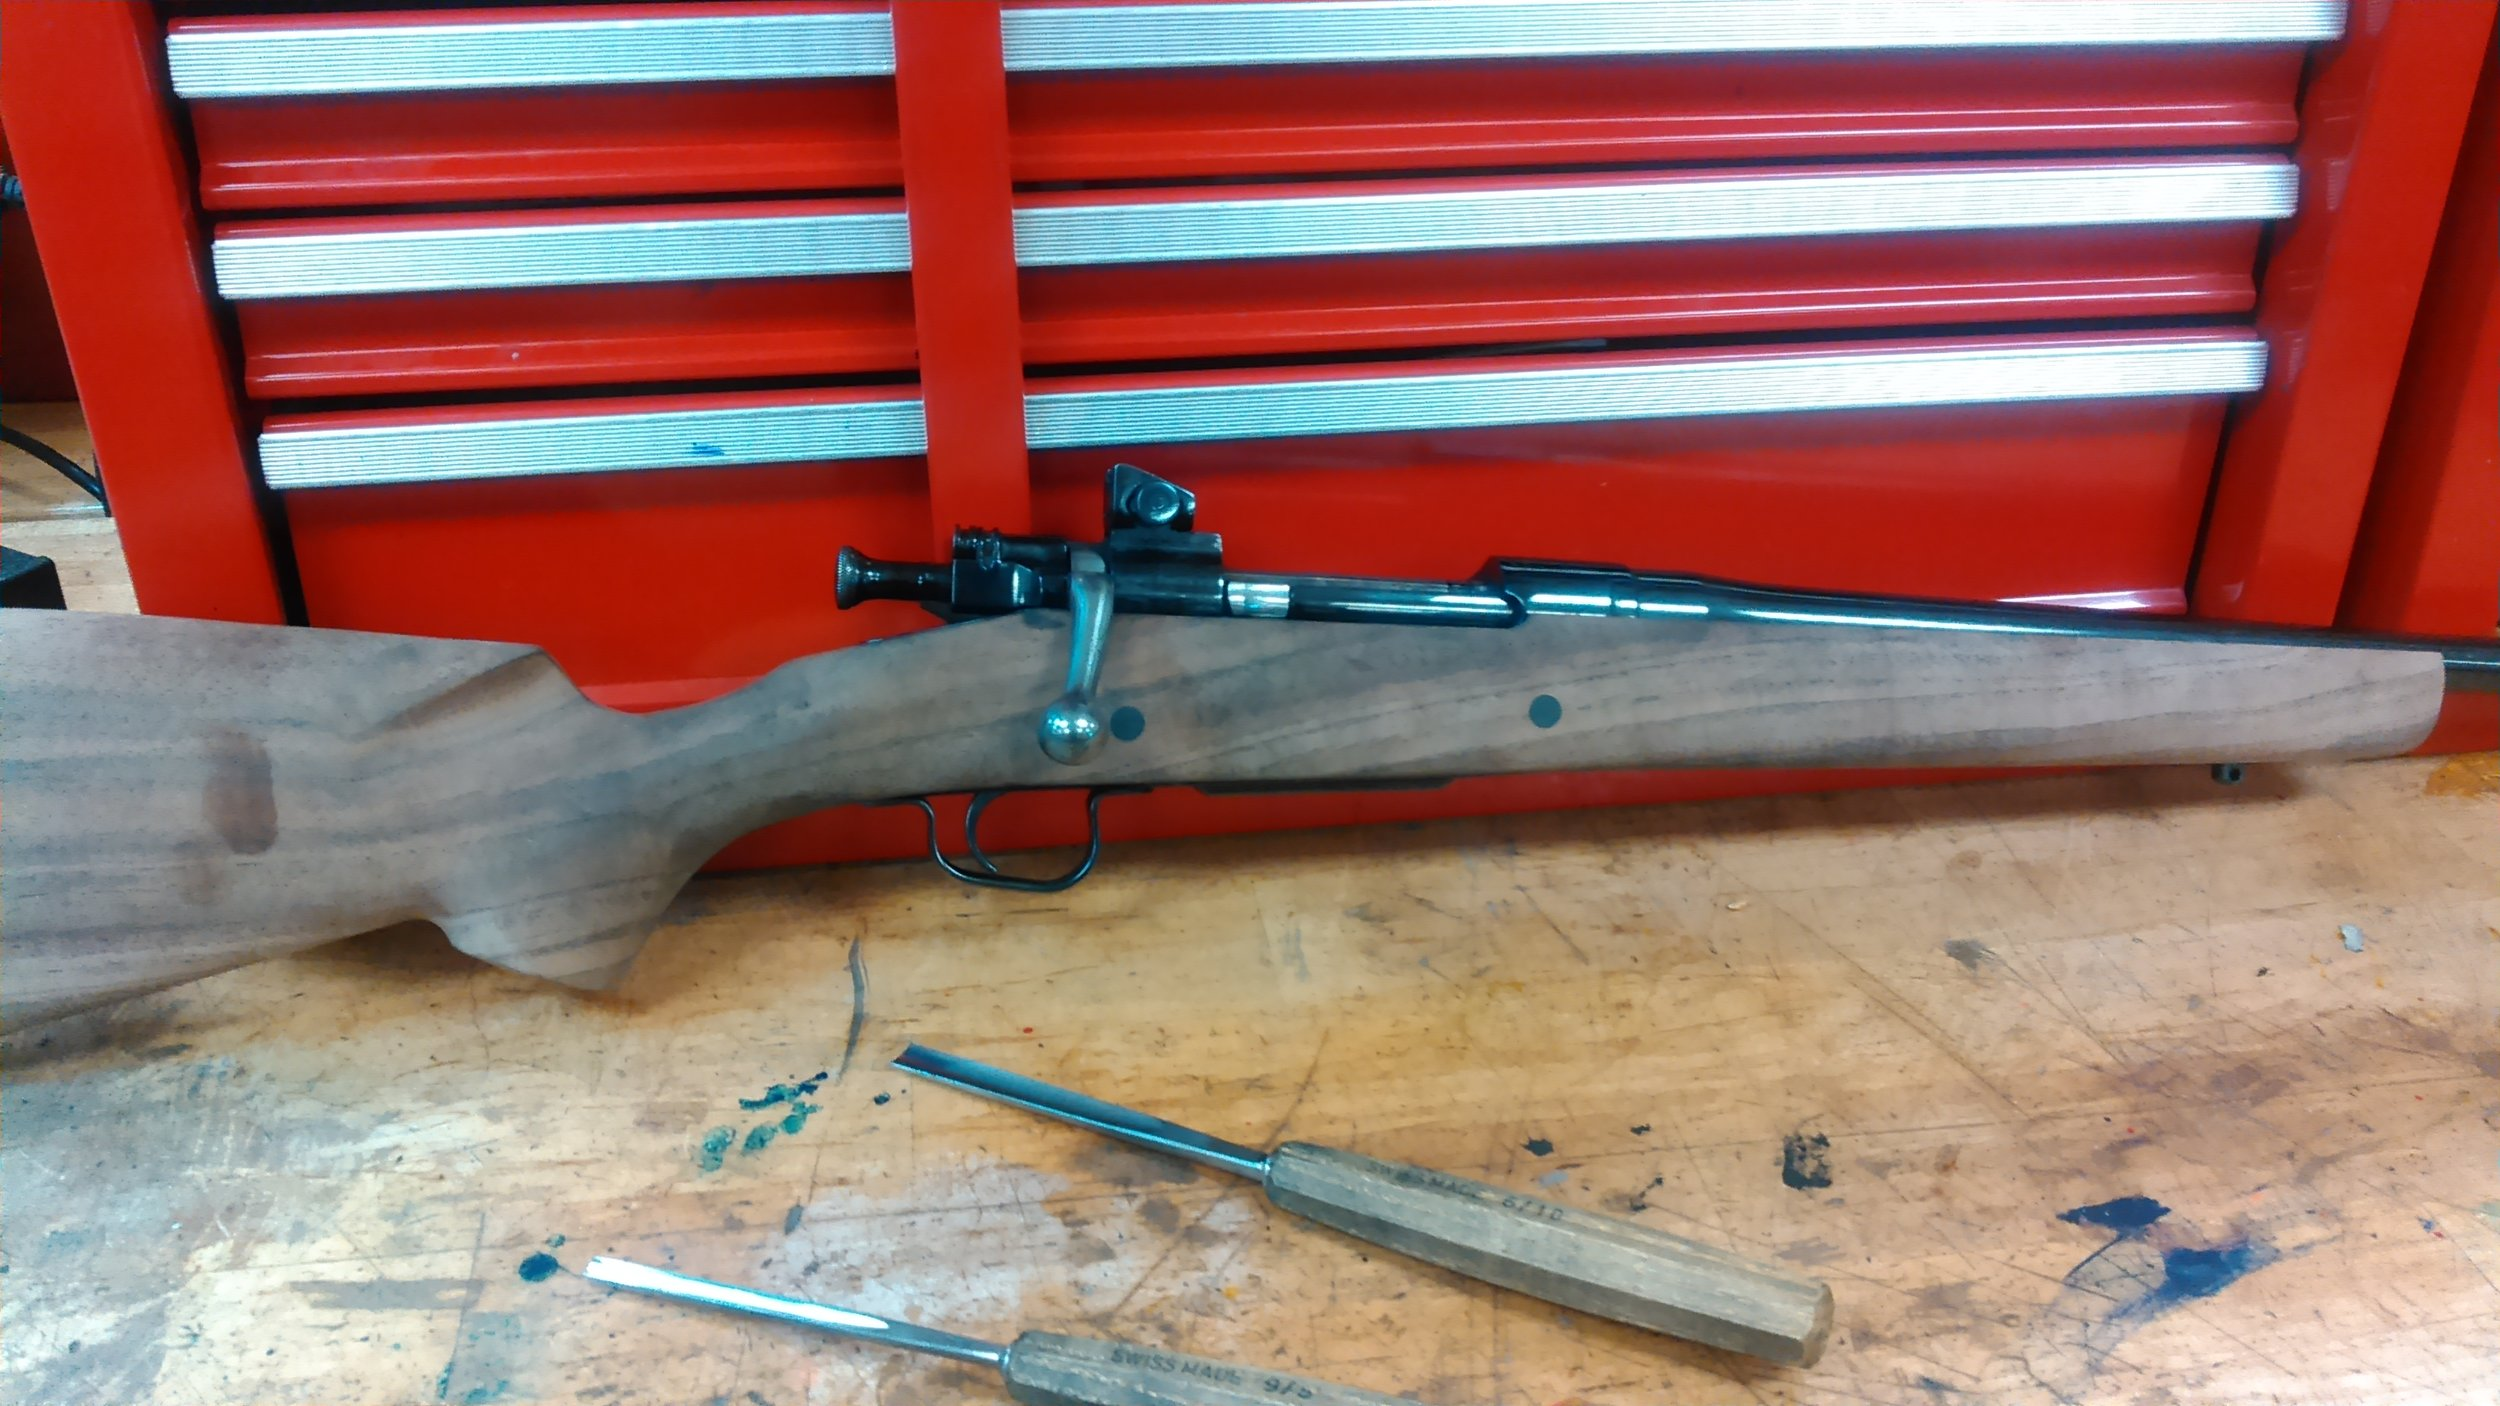 The new Boyd's Claro X Walnut stock required some inletting anyways, so a little more to fit the trigger was no big deal.